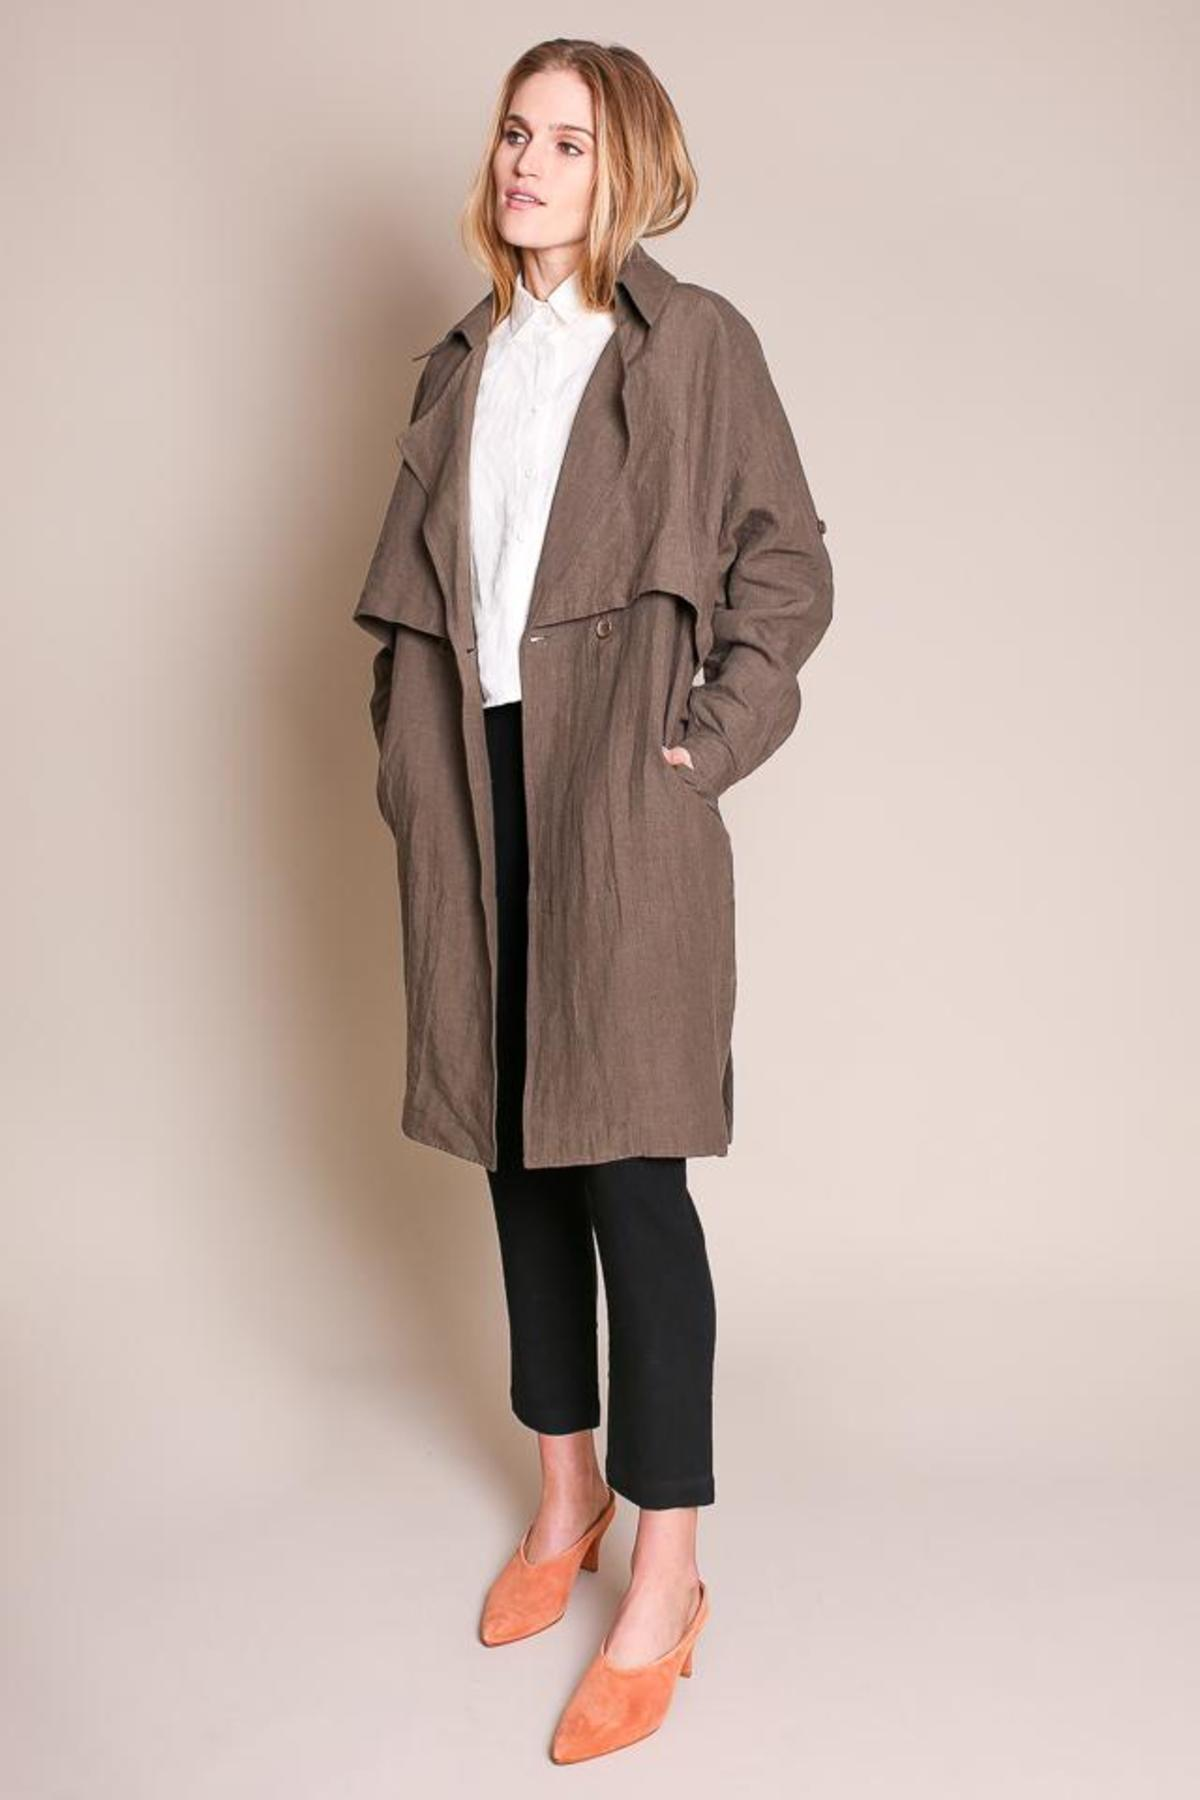 M NARANKA Khaki Double Breasted Trench Coat L S